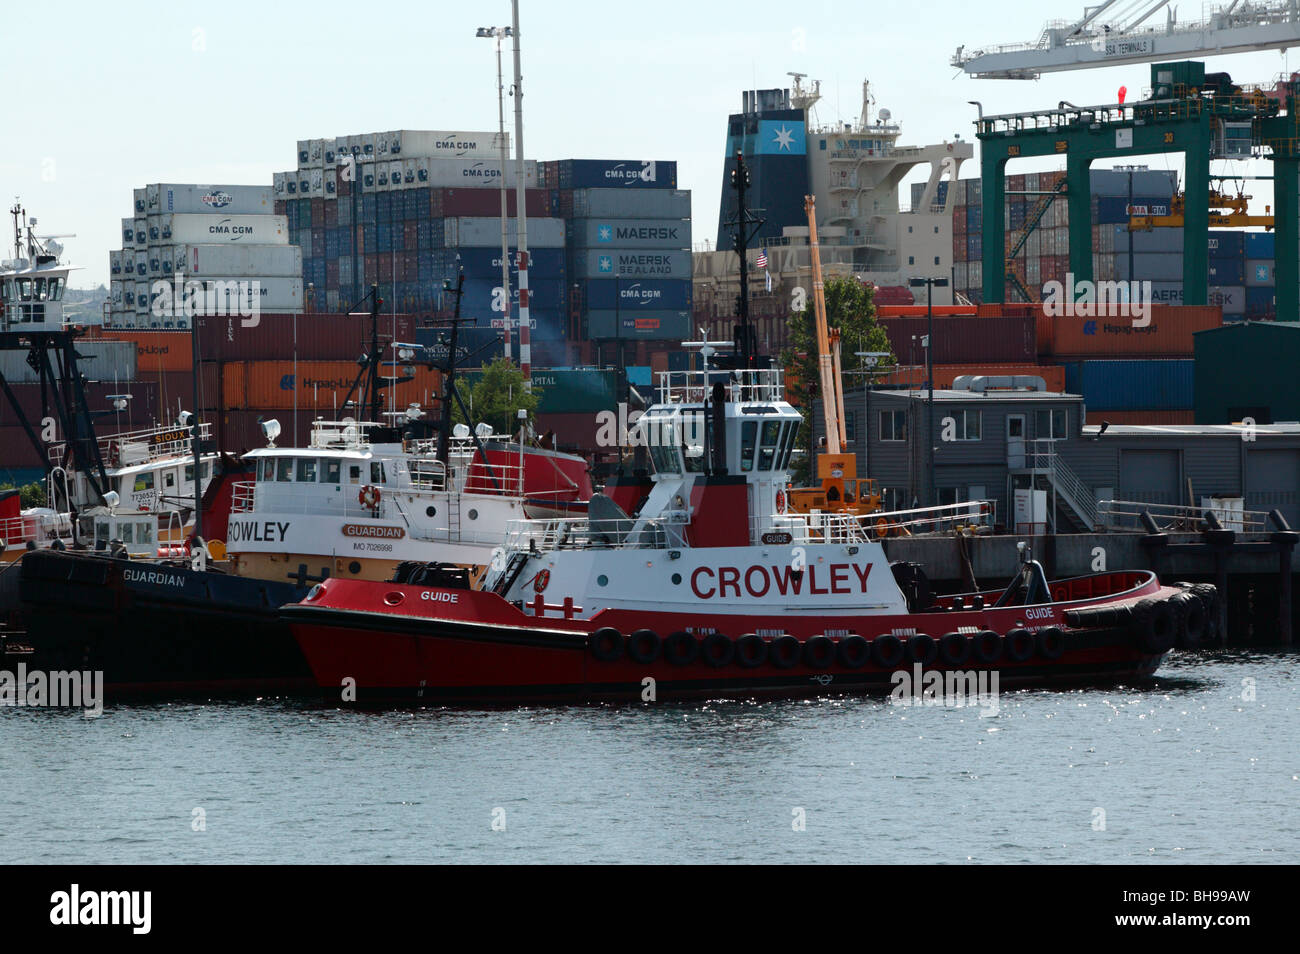 View of two Crowley Harbour Class Tractor Tugs  moored in the port of Seattle - Stock Image